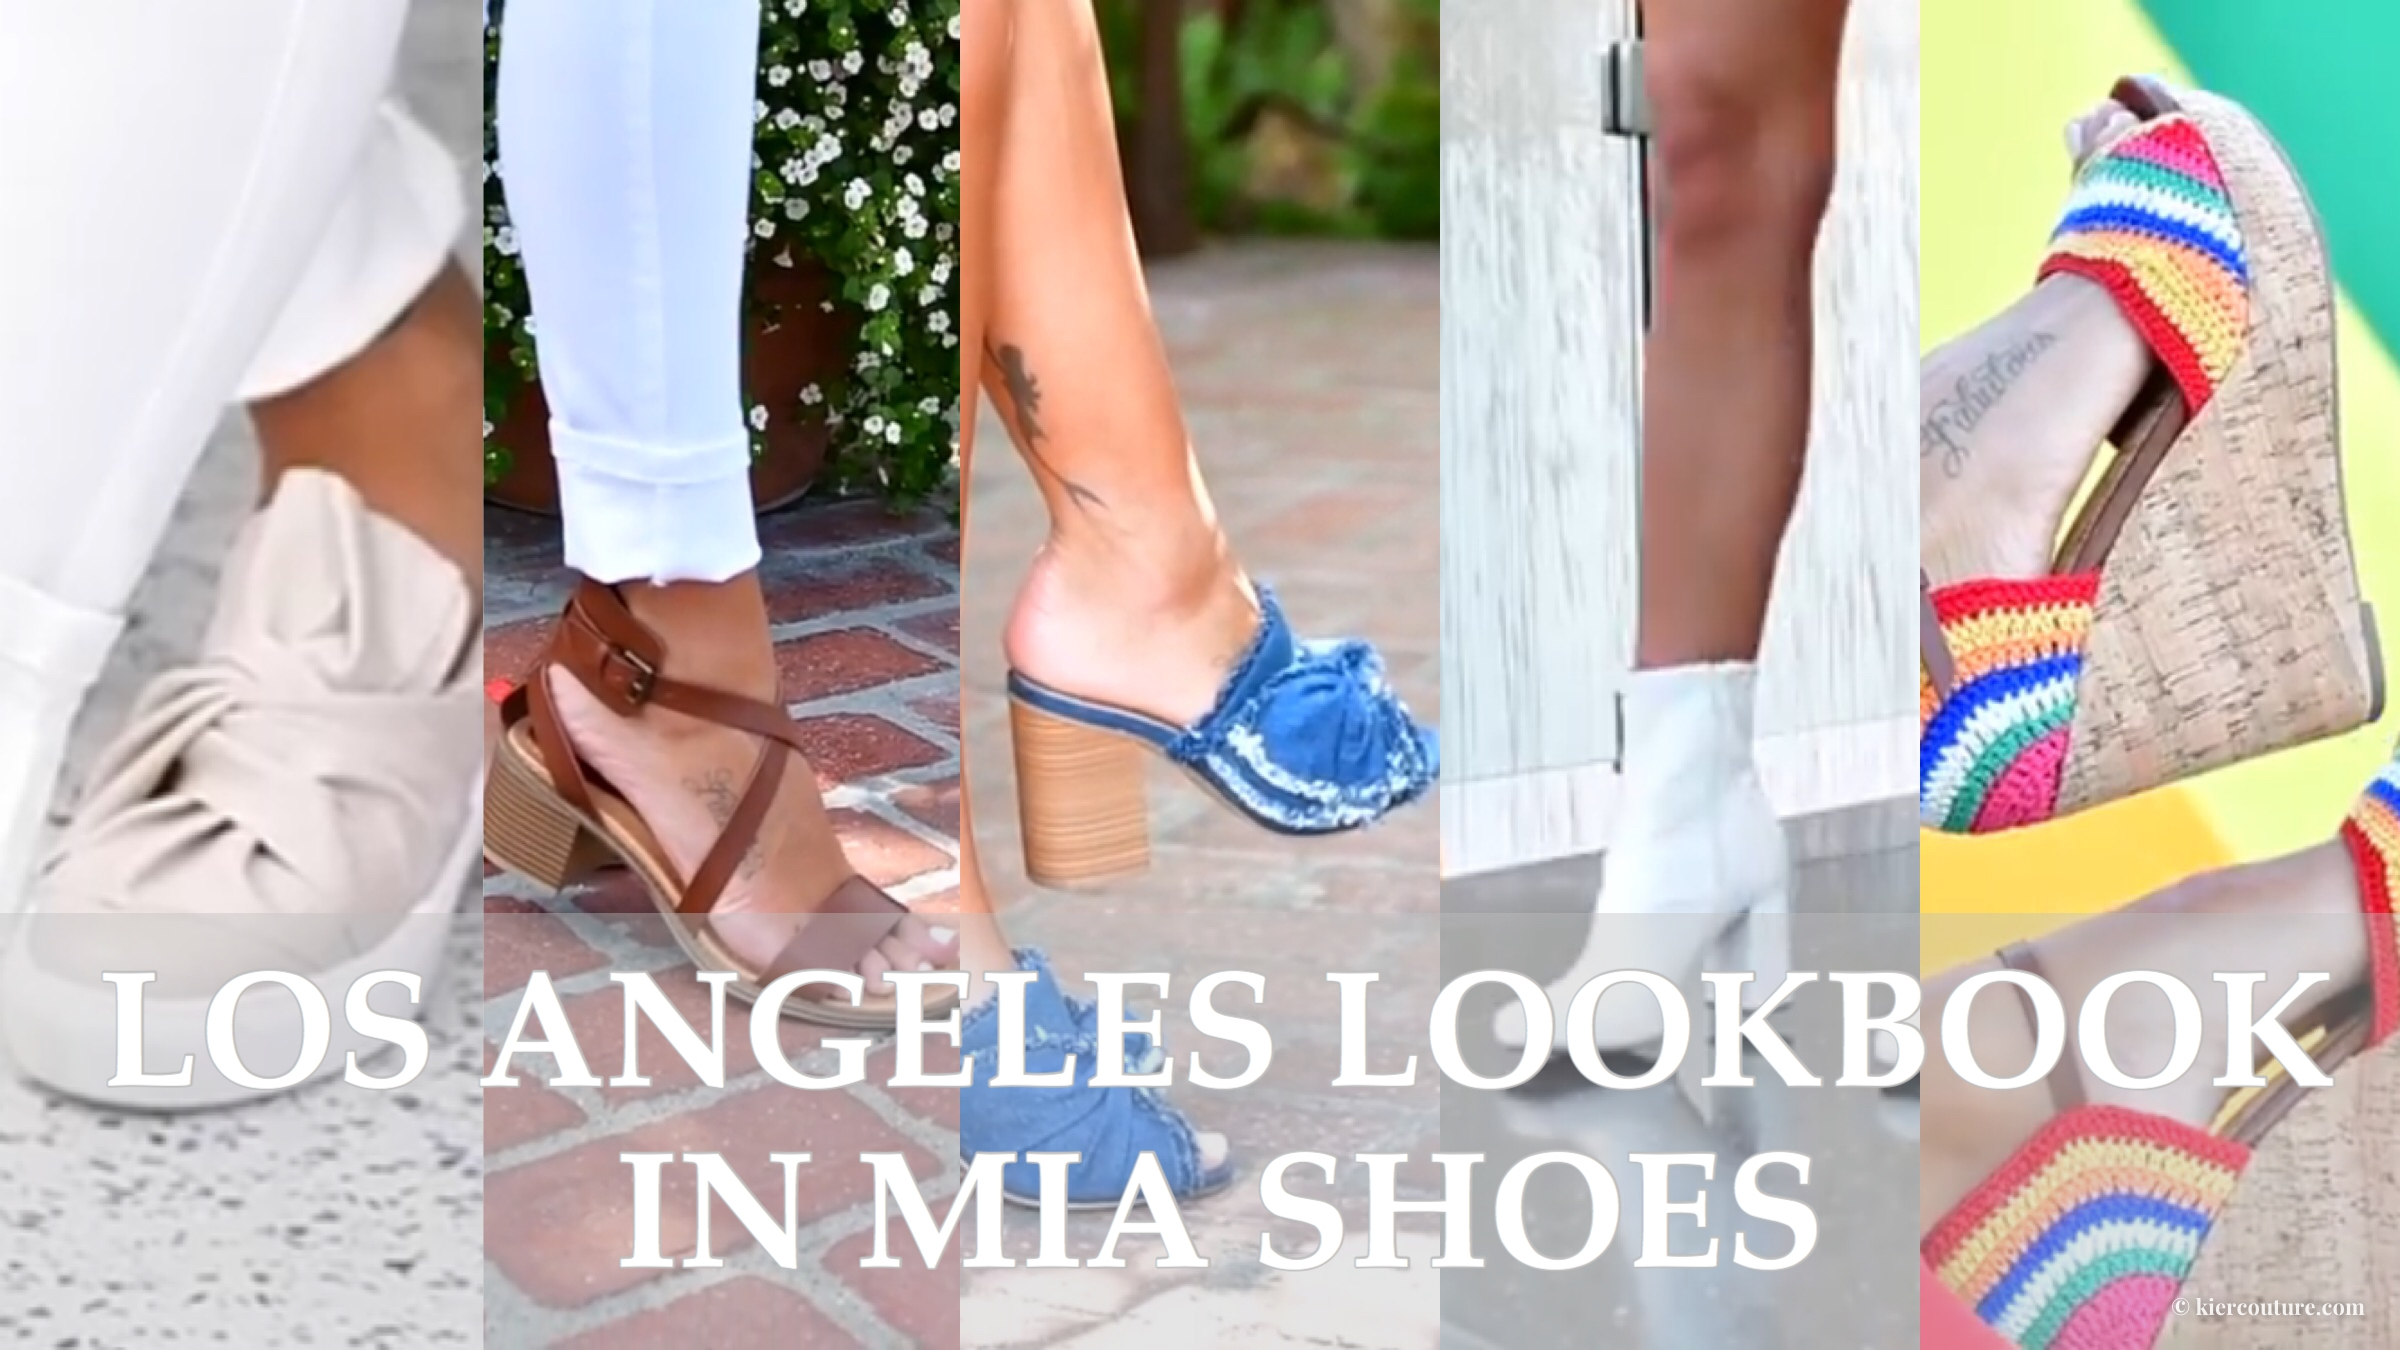 LA Lookbook in MIA Shoes